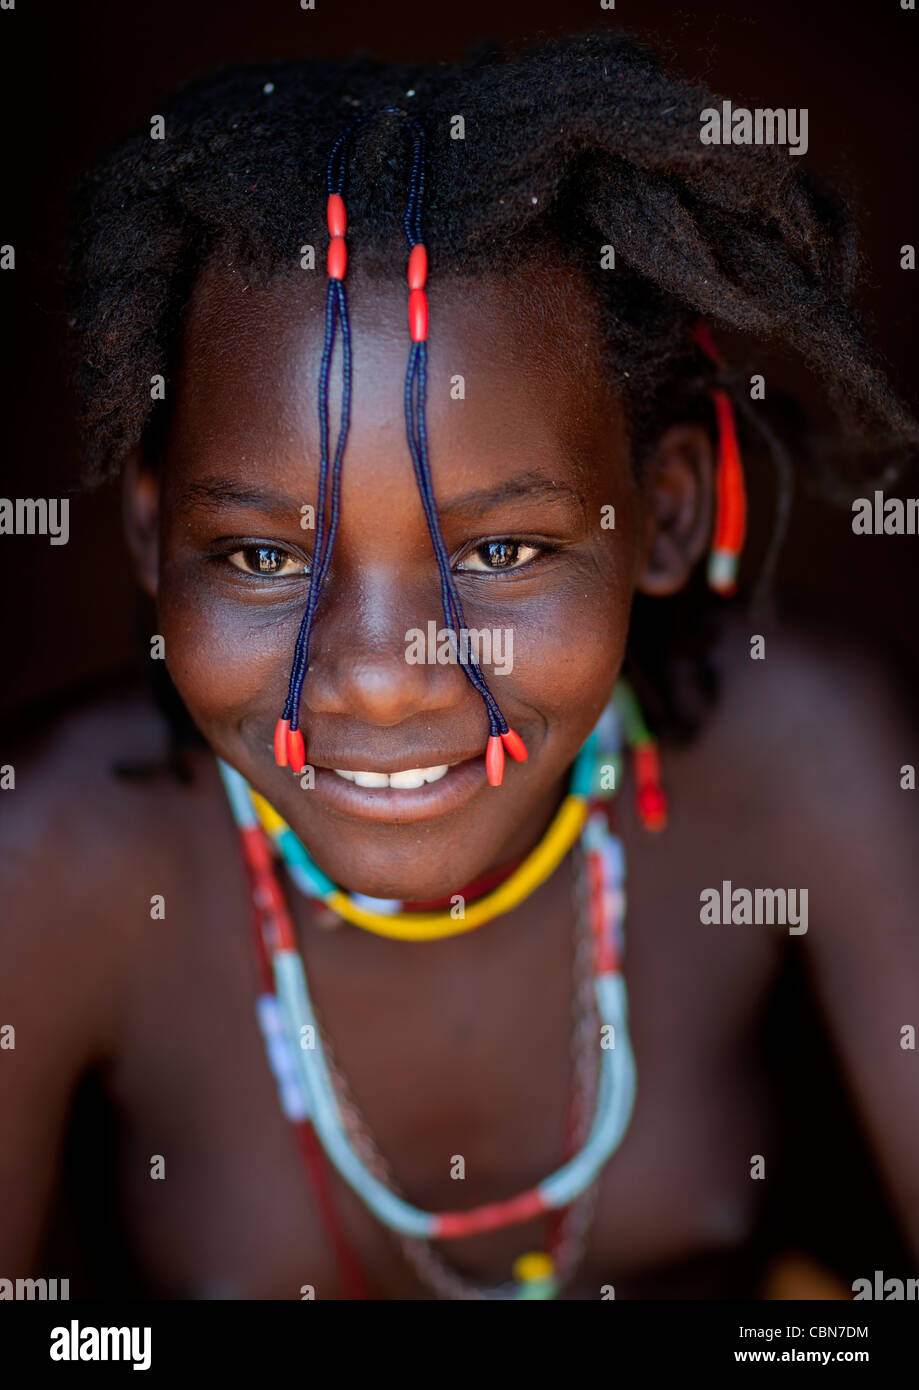 Mudimba Girl With Plaits In Front Of The Face Called Misses Fina, Angola - Stock Image